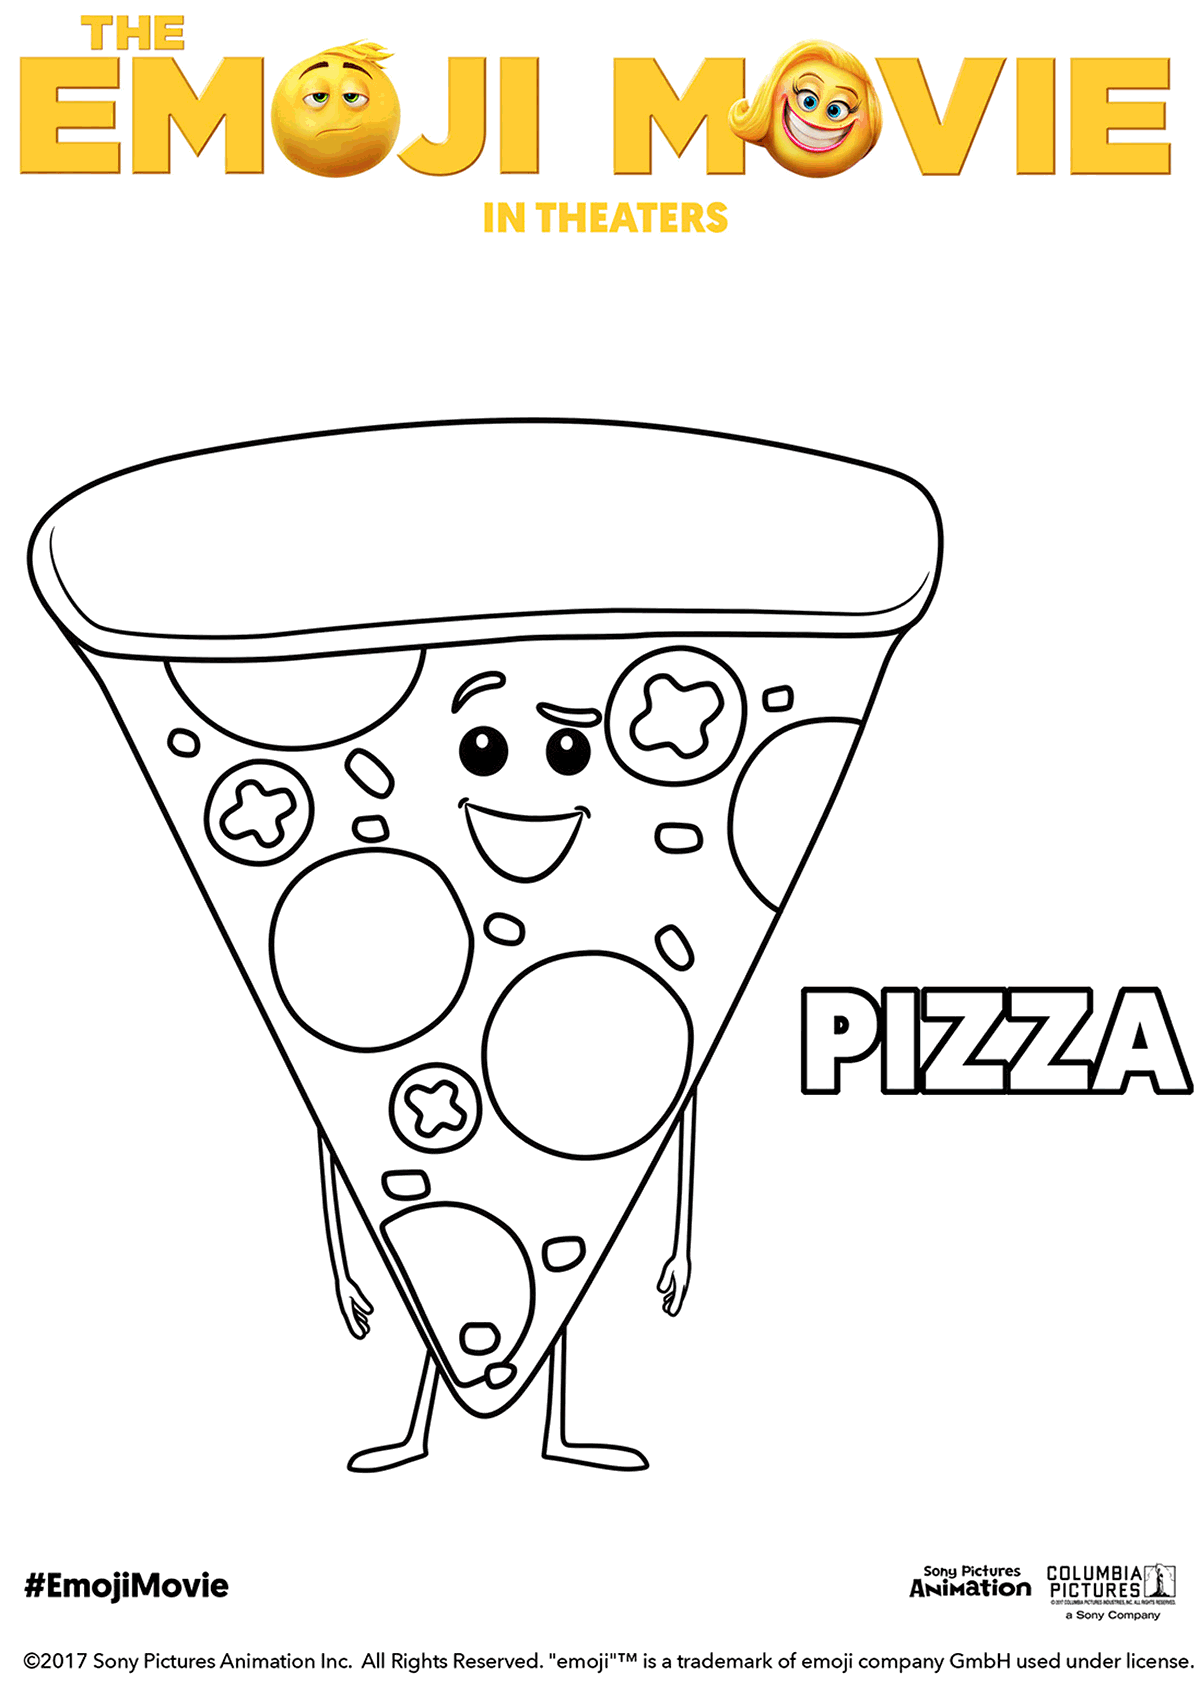 The Emoji Movie Pizza Coloring Page